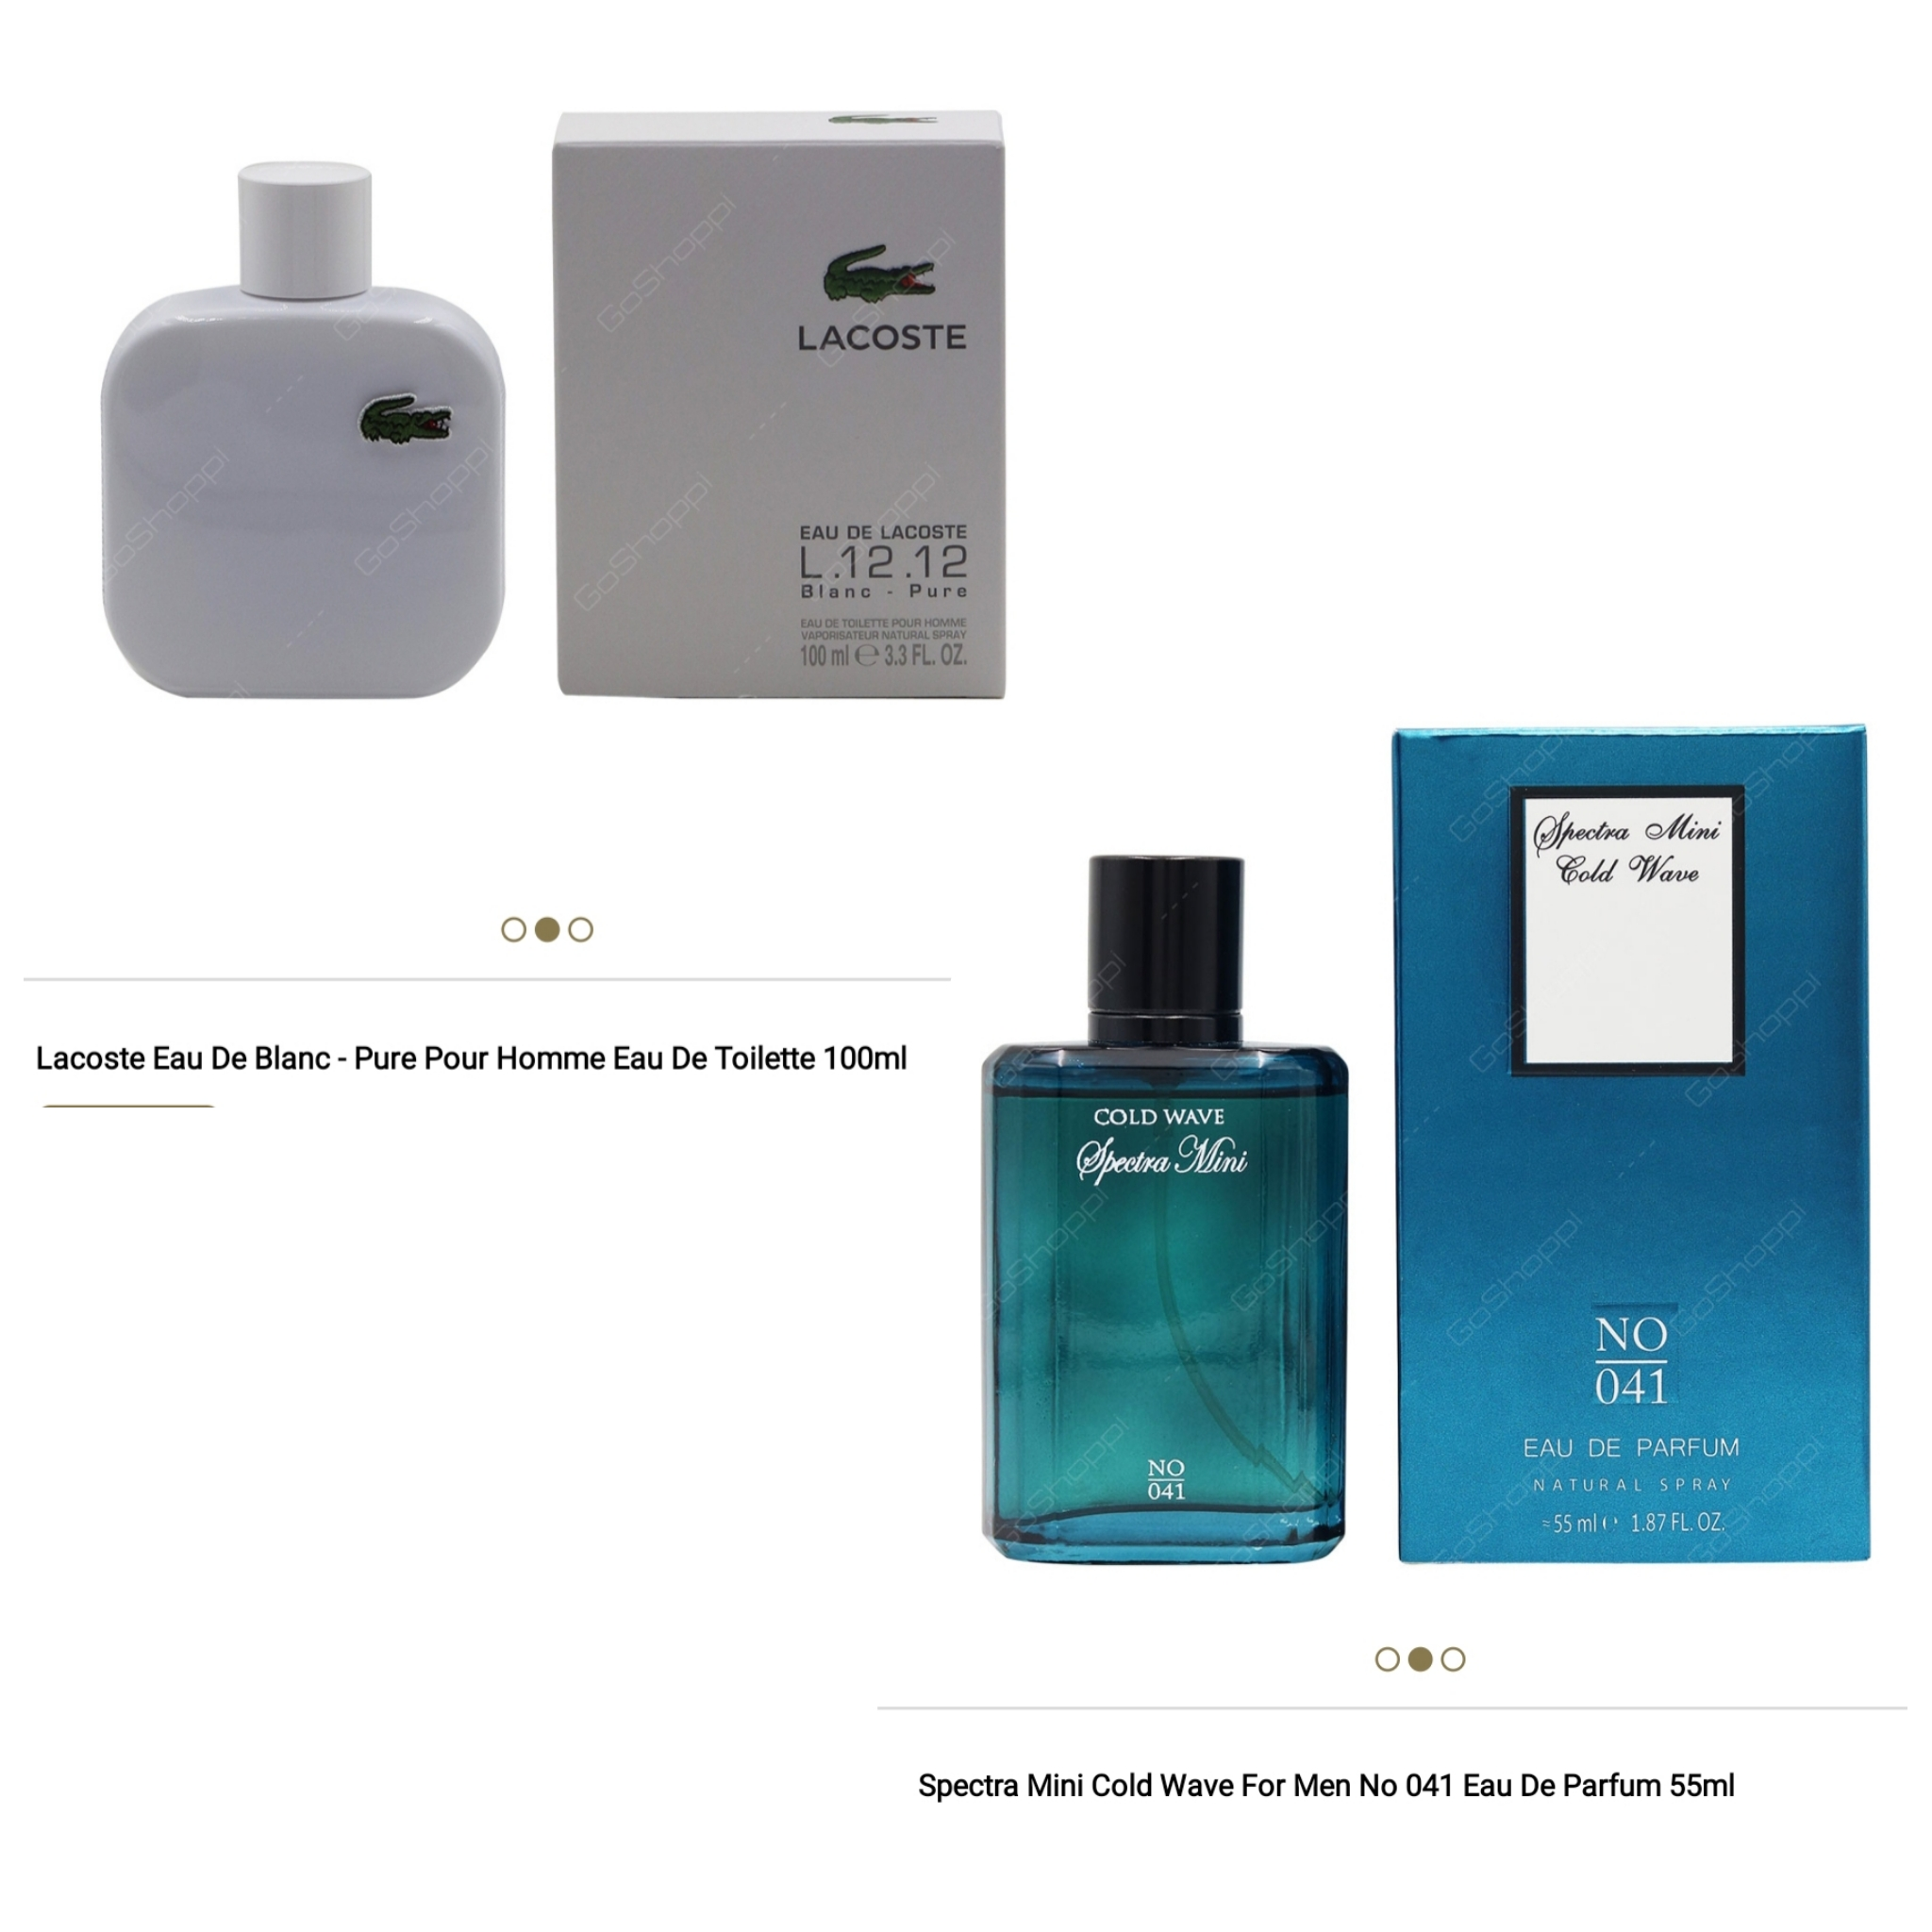 Free Spectra 55ml With Lacoste Blanc 100ml